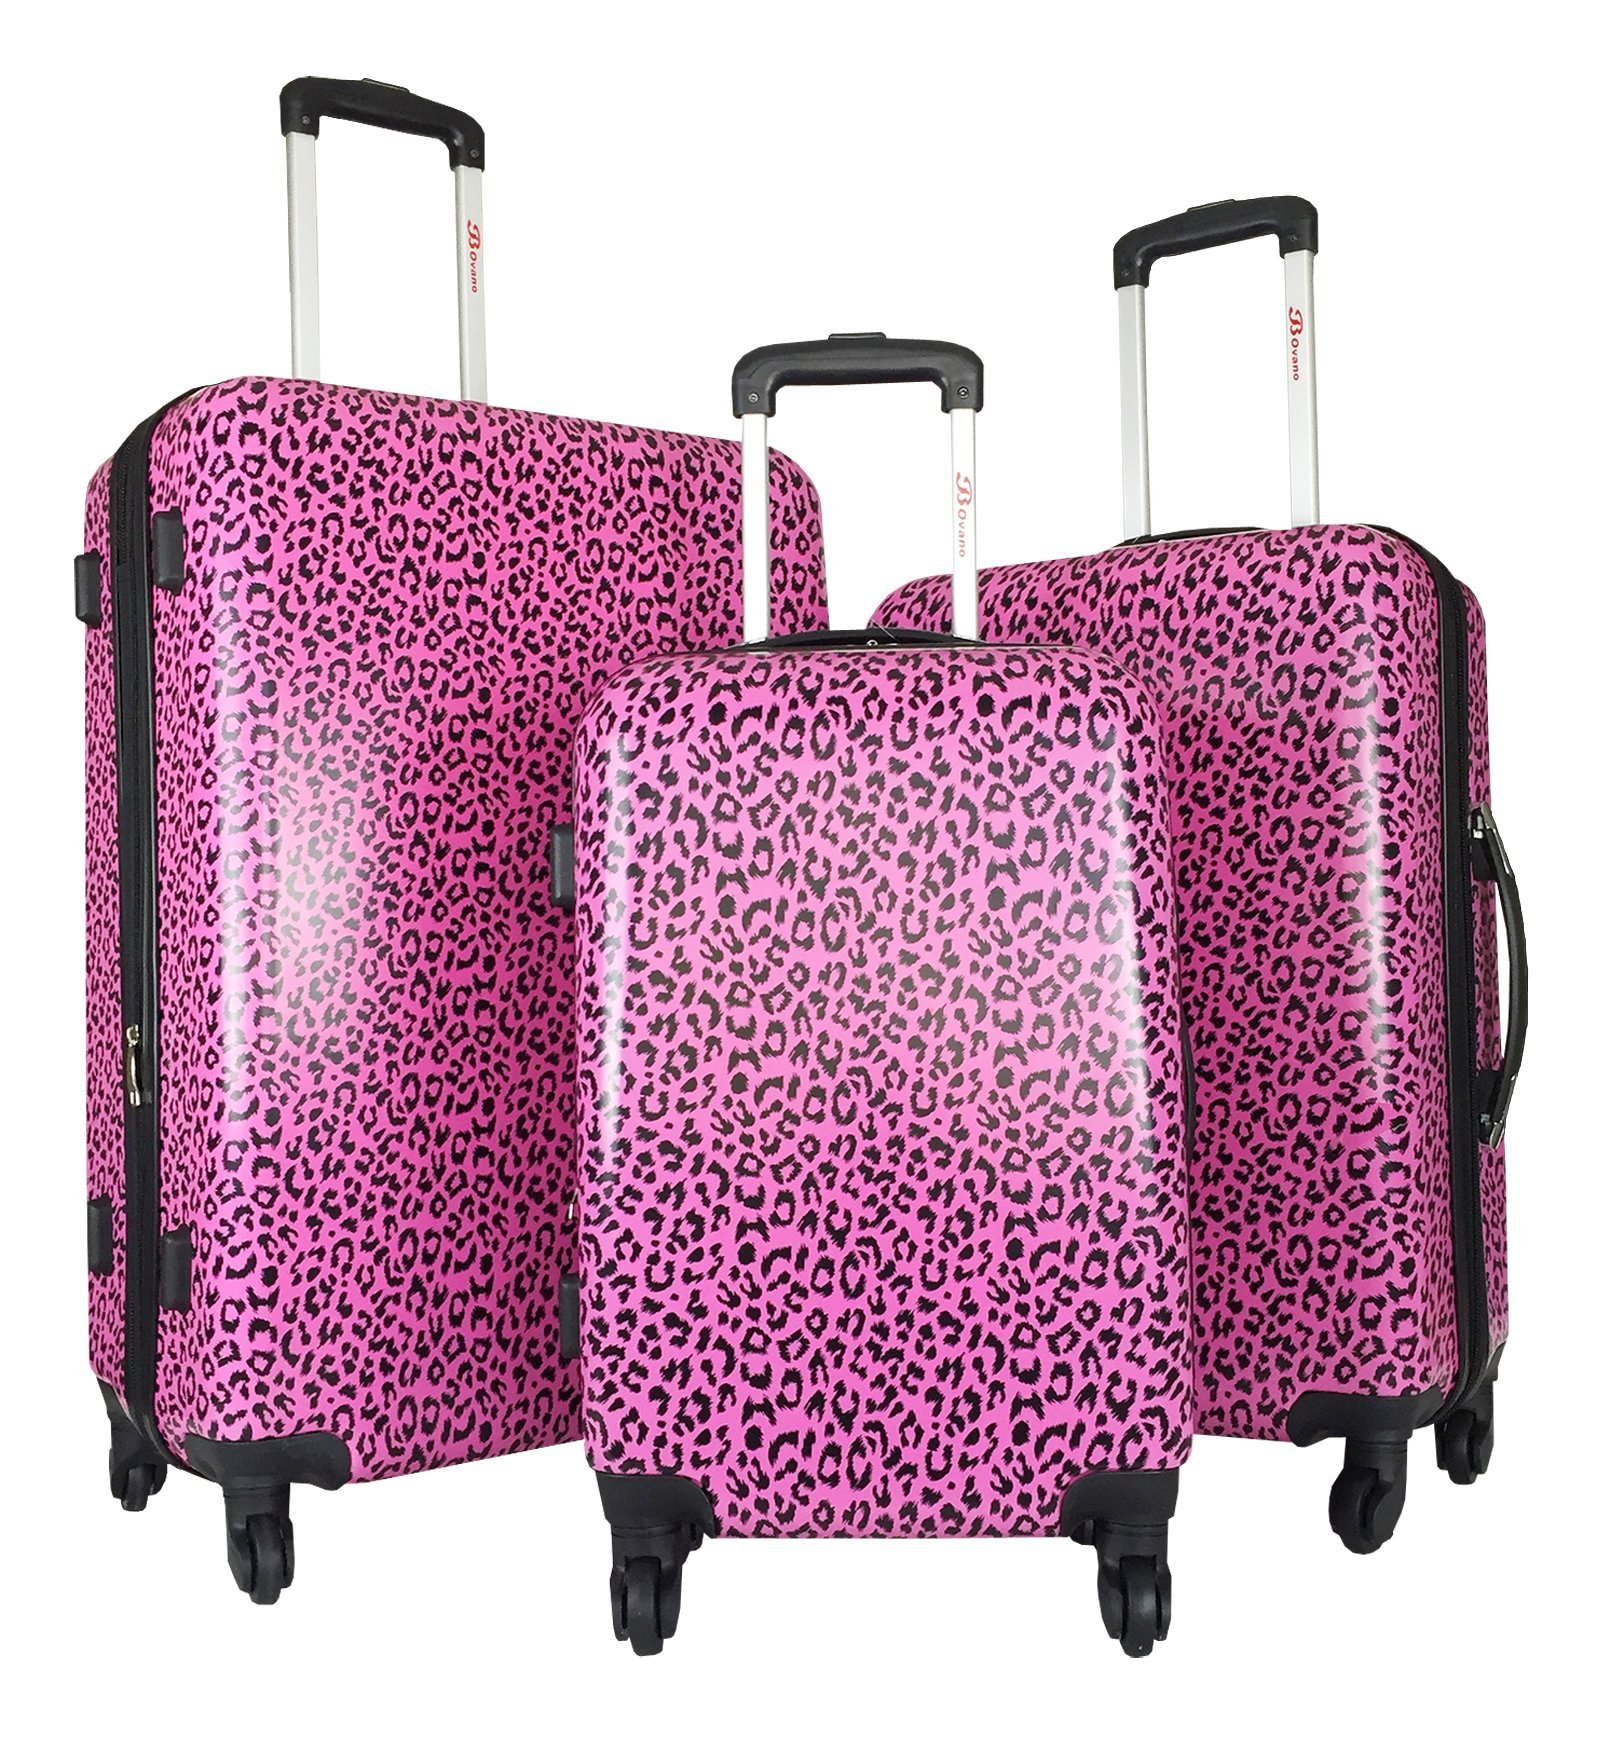 3pc Luggage Set Hardside Rolling 4wheel Spinner Carryon Travel Case Poly Pink Cheetah by Trendy Flyer